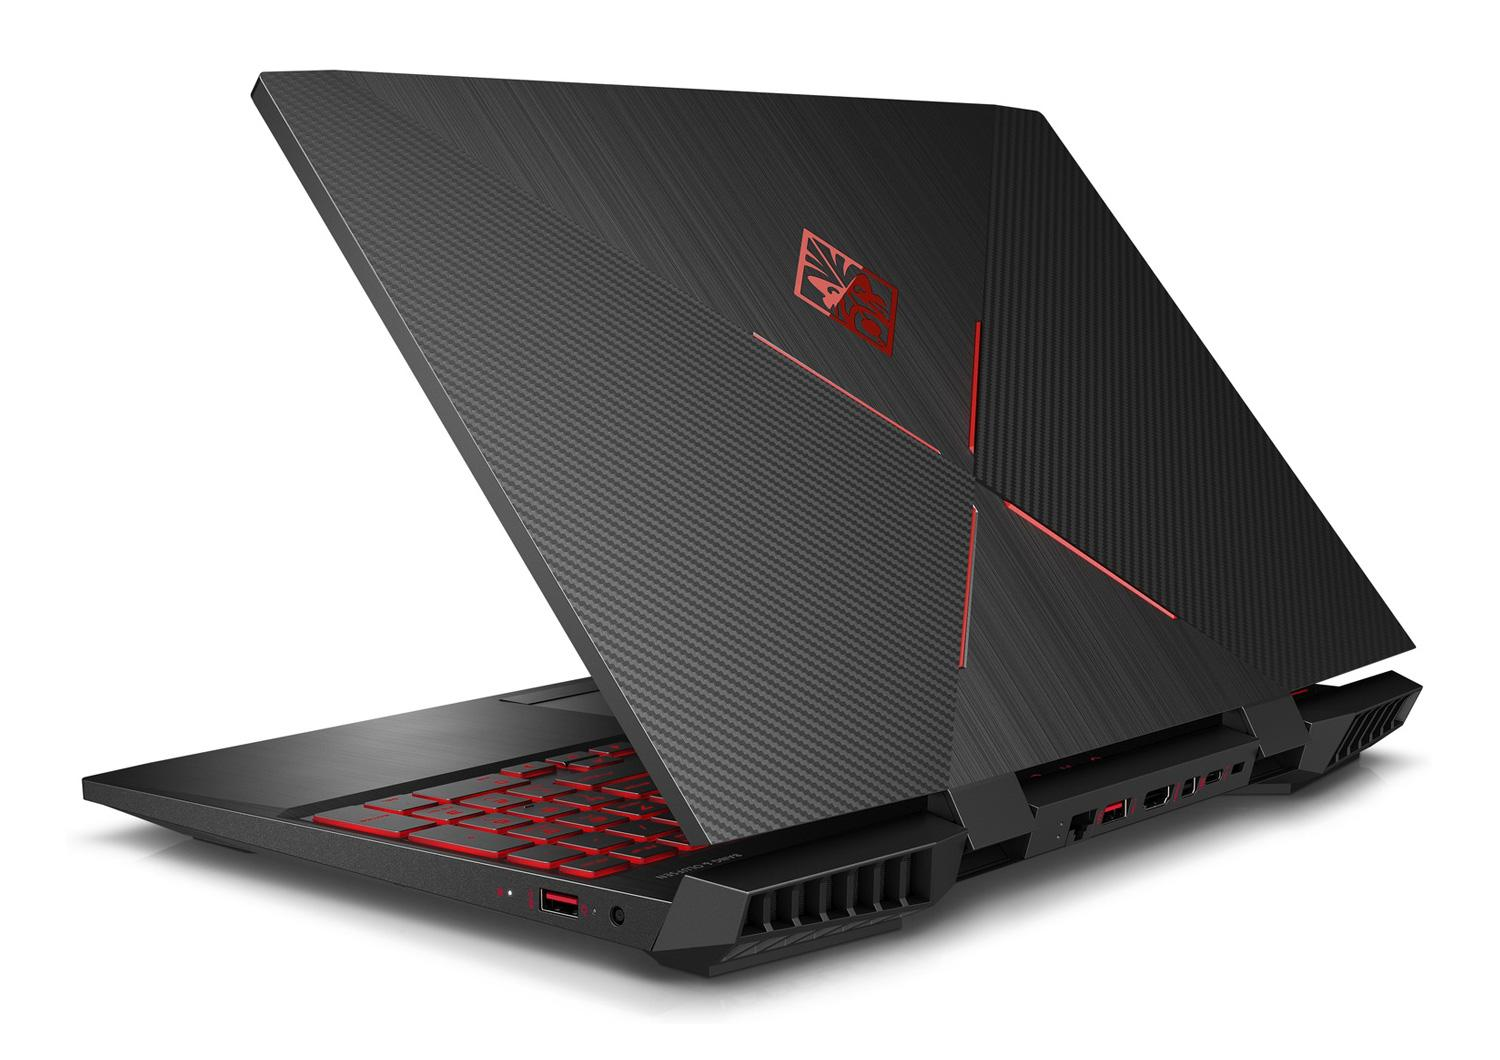 Ordinateur portable HP Omen 15-dc1005nf - RTX 2070 Turing, IPS 144Hz - photo 3